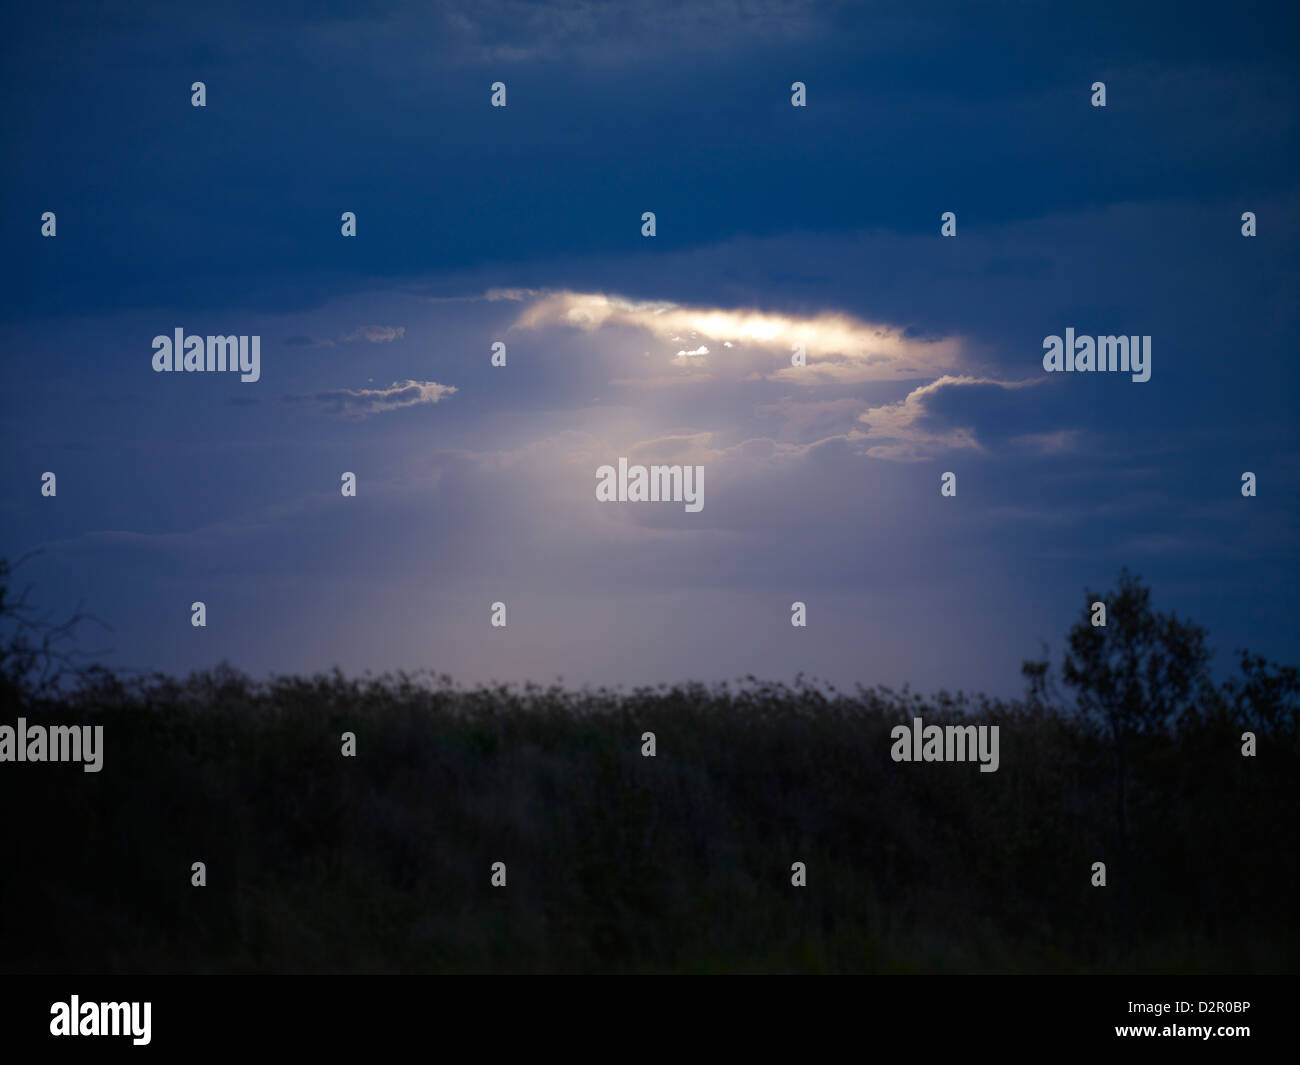 Landscape and storm clouds - Stock Image